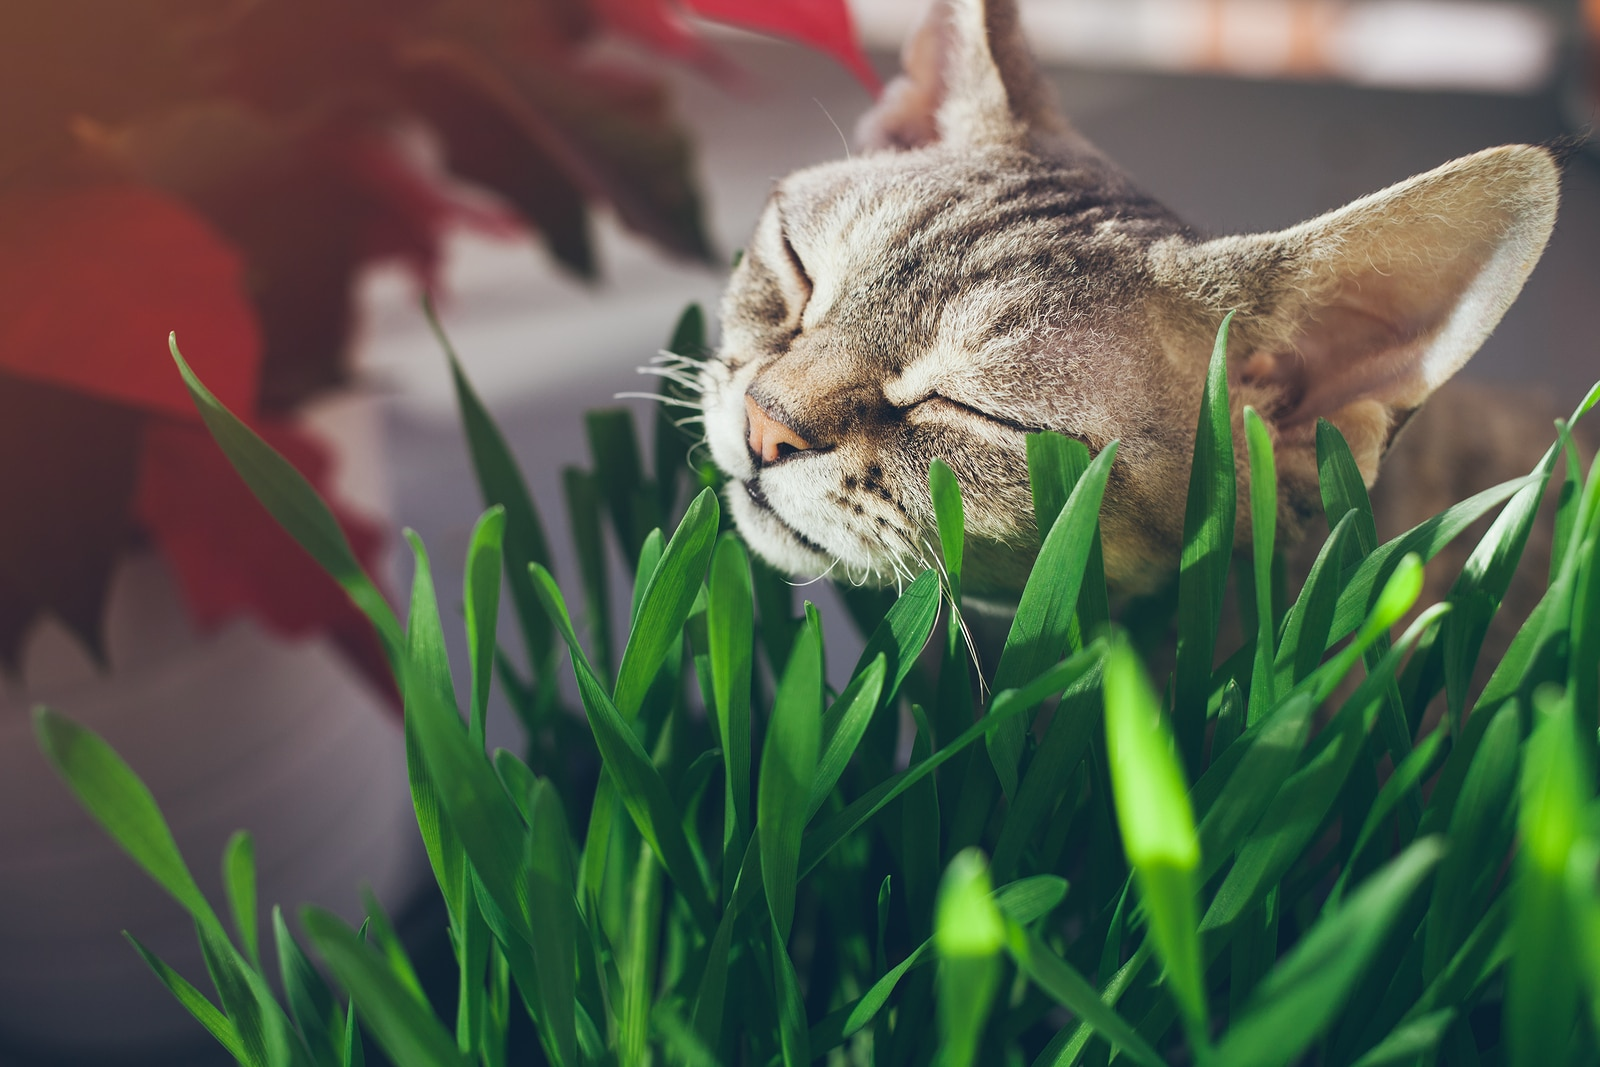 Tabby cat nuzzling some blades of grass